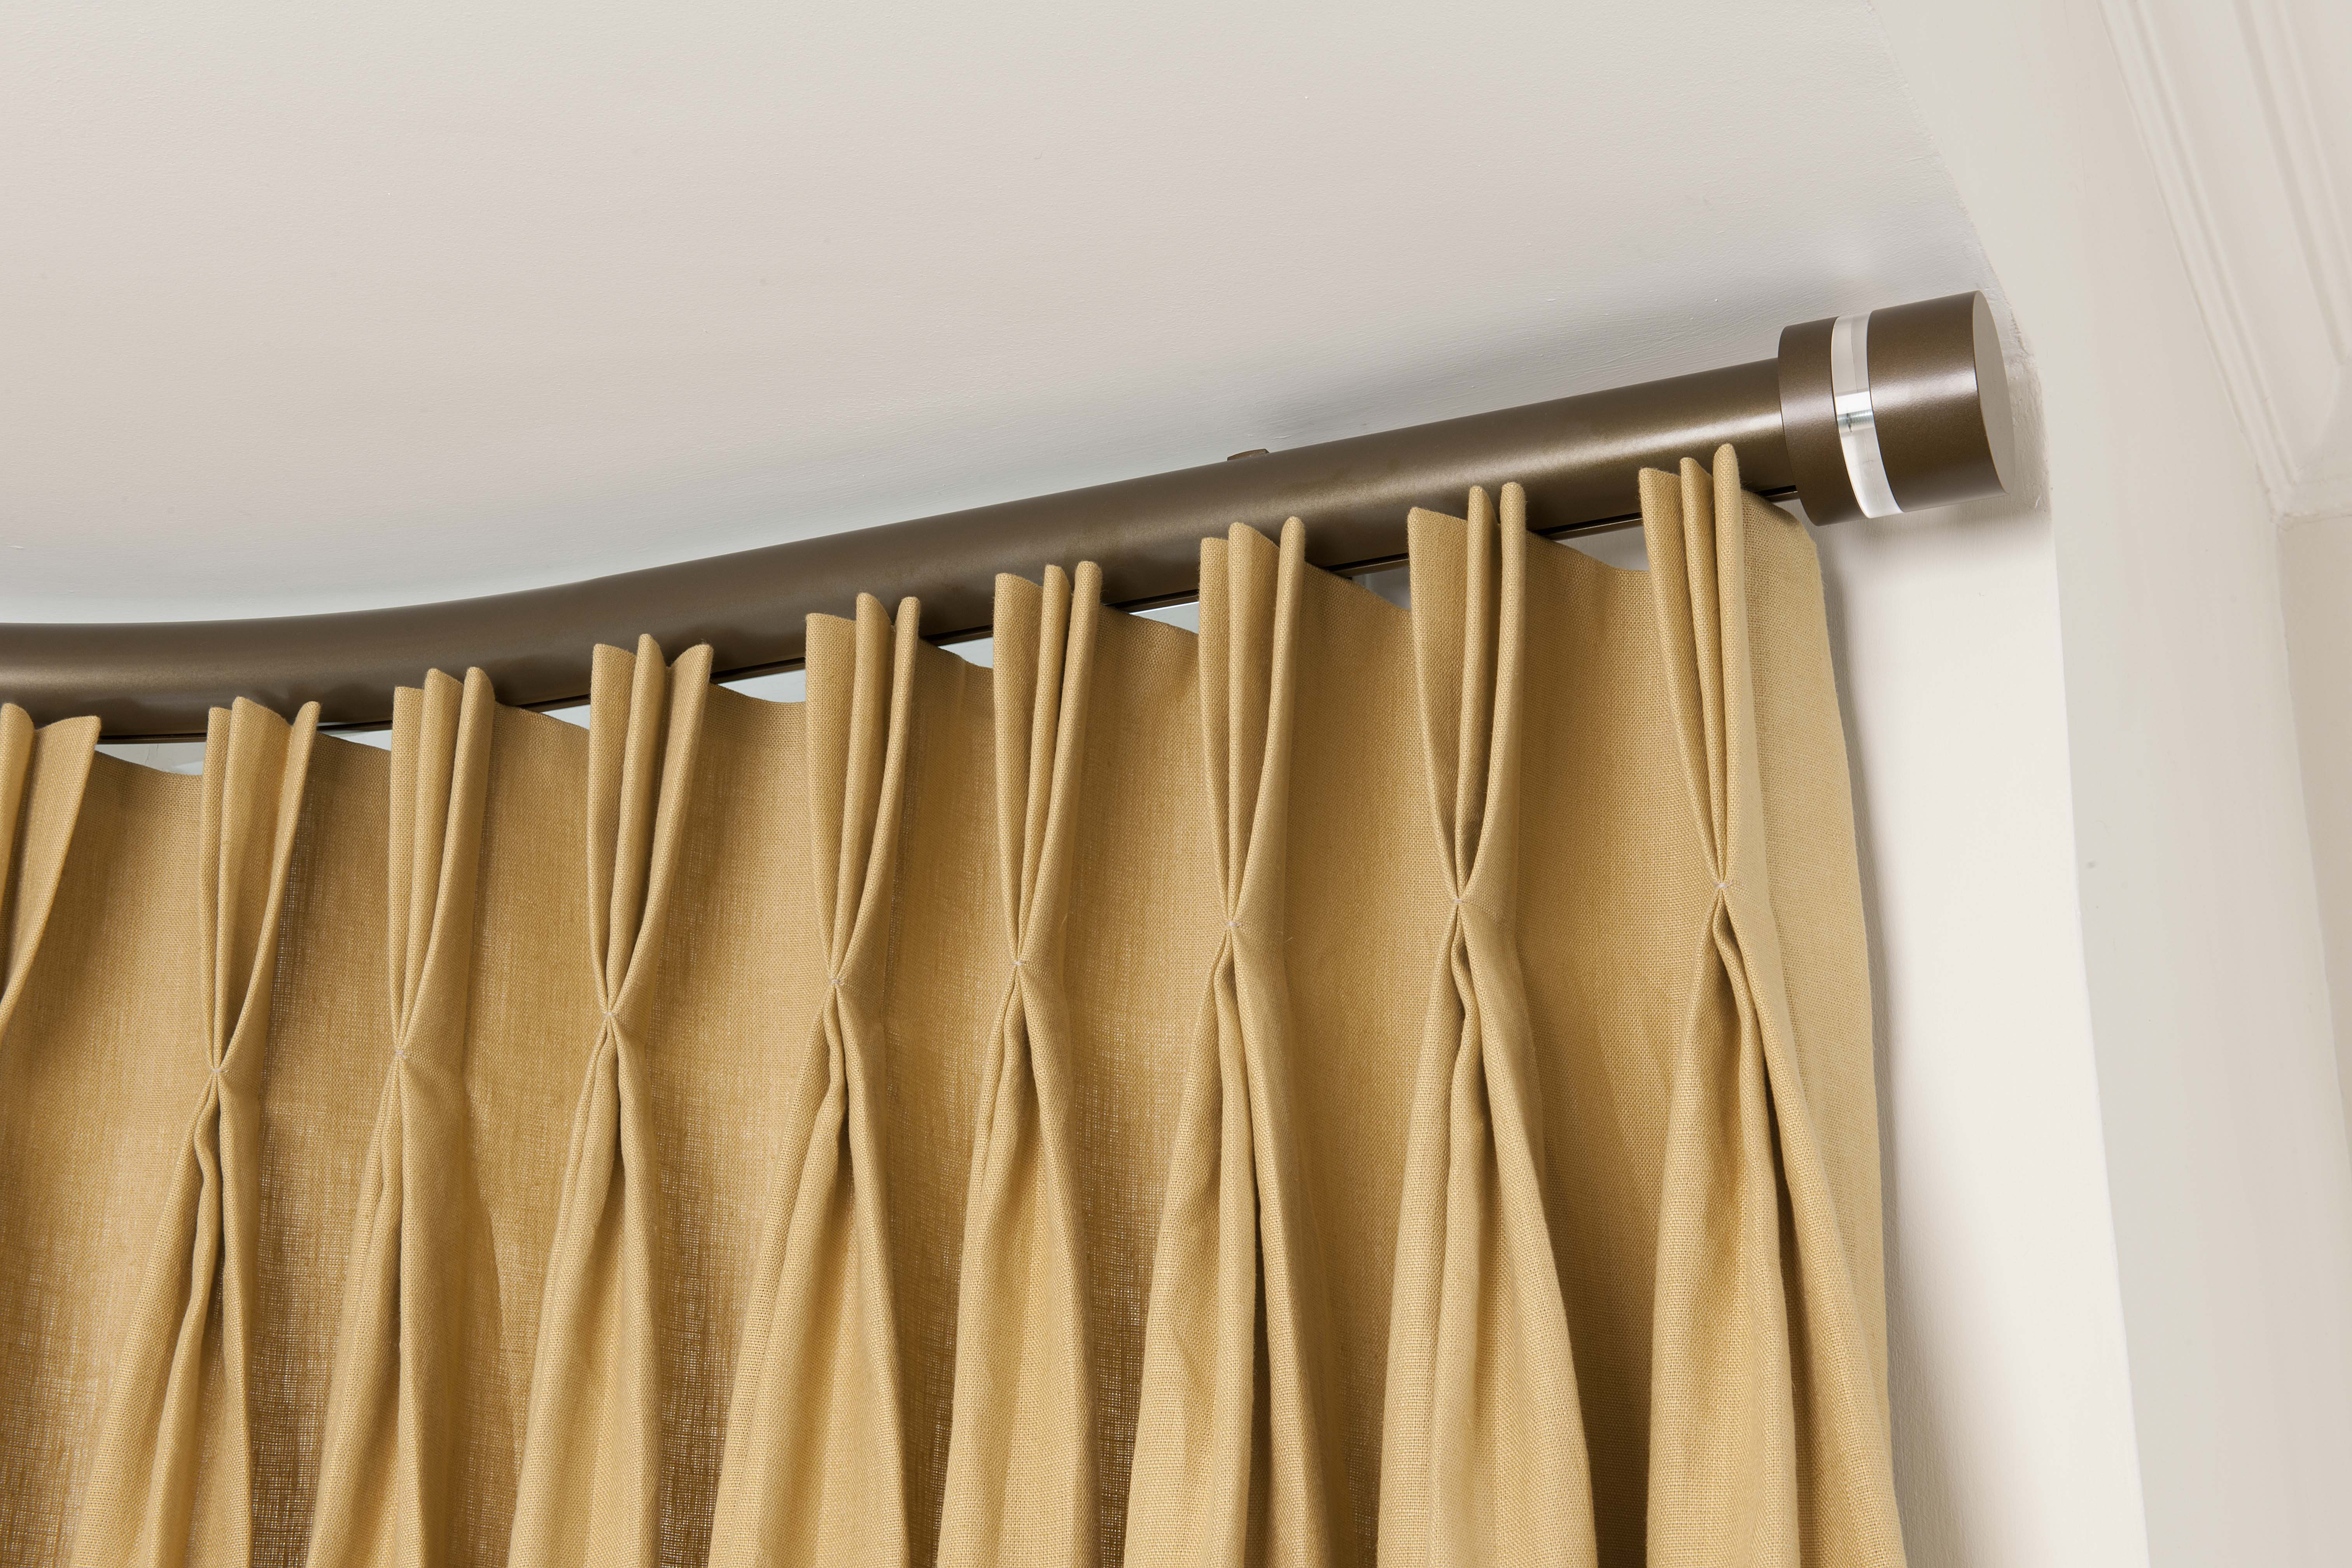 silent gliss electric recessed metrople track with triple pleate curtains